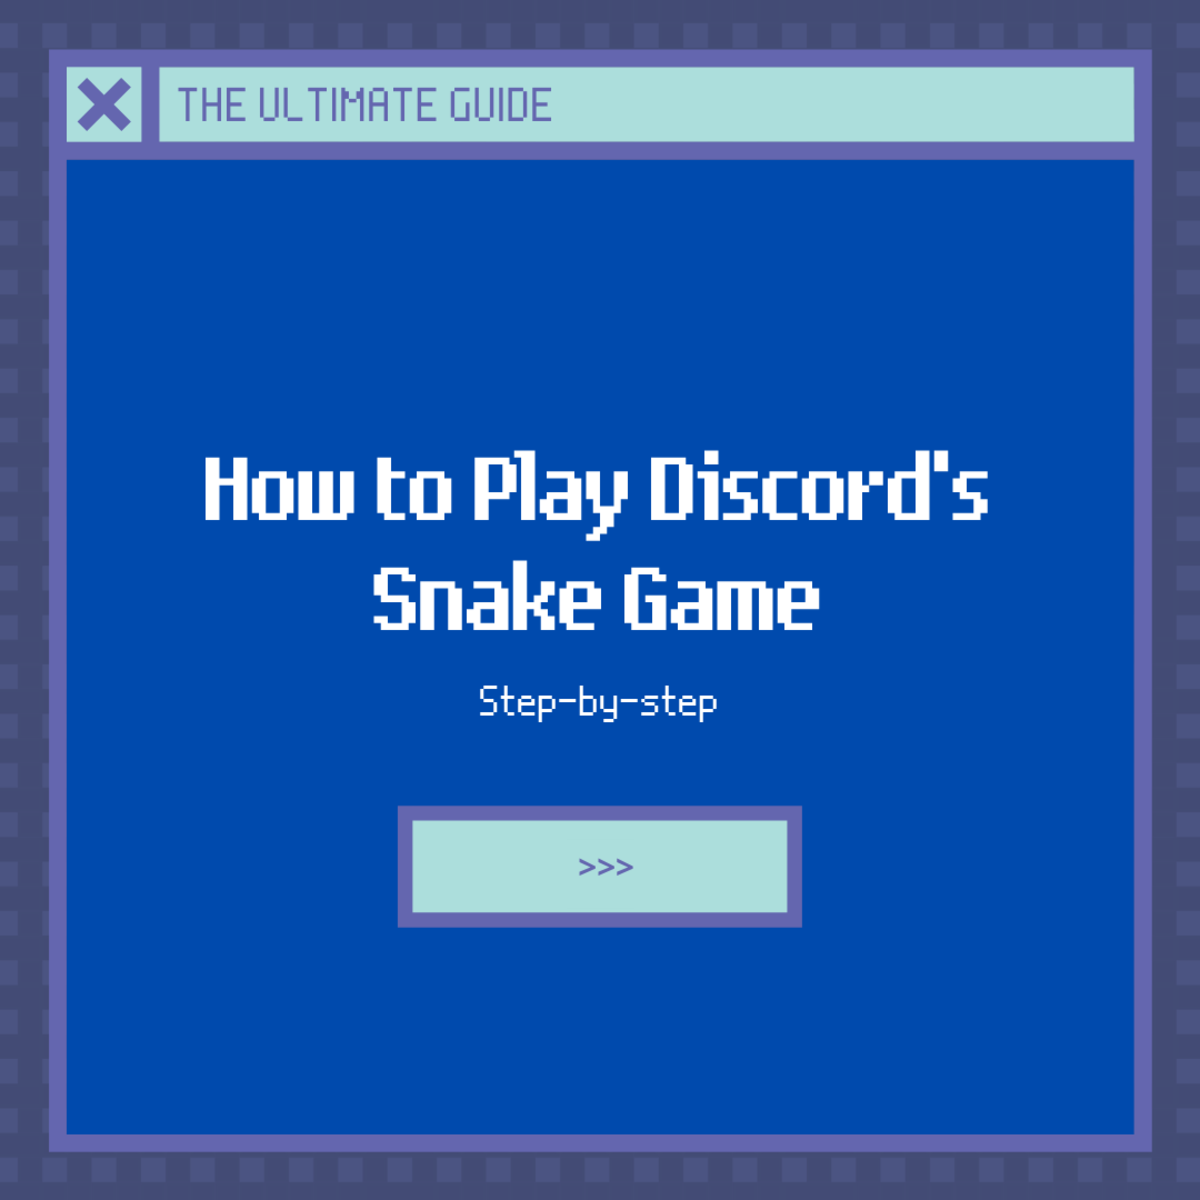 Discover how to play Discord's secret snake game in this step-by-step guide!